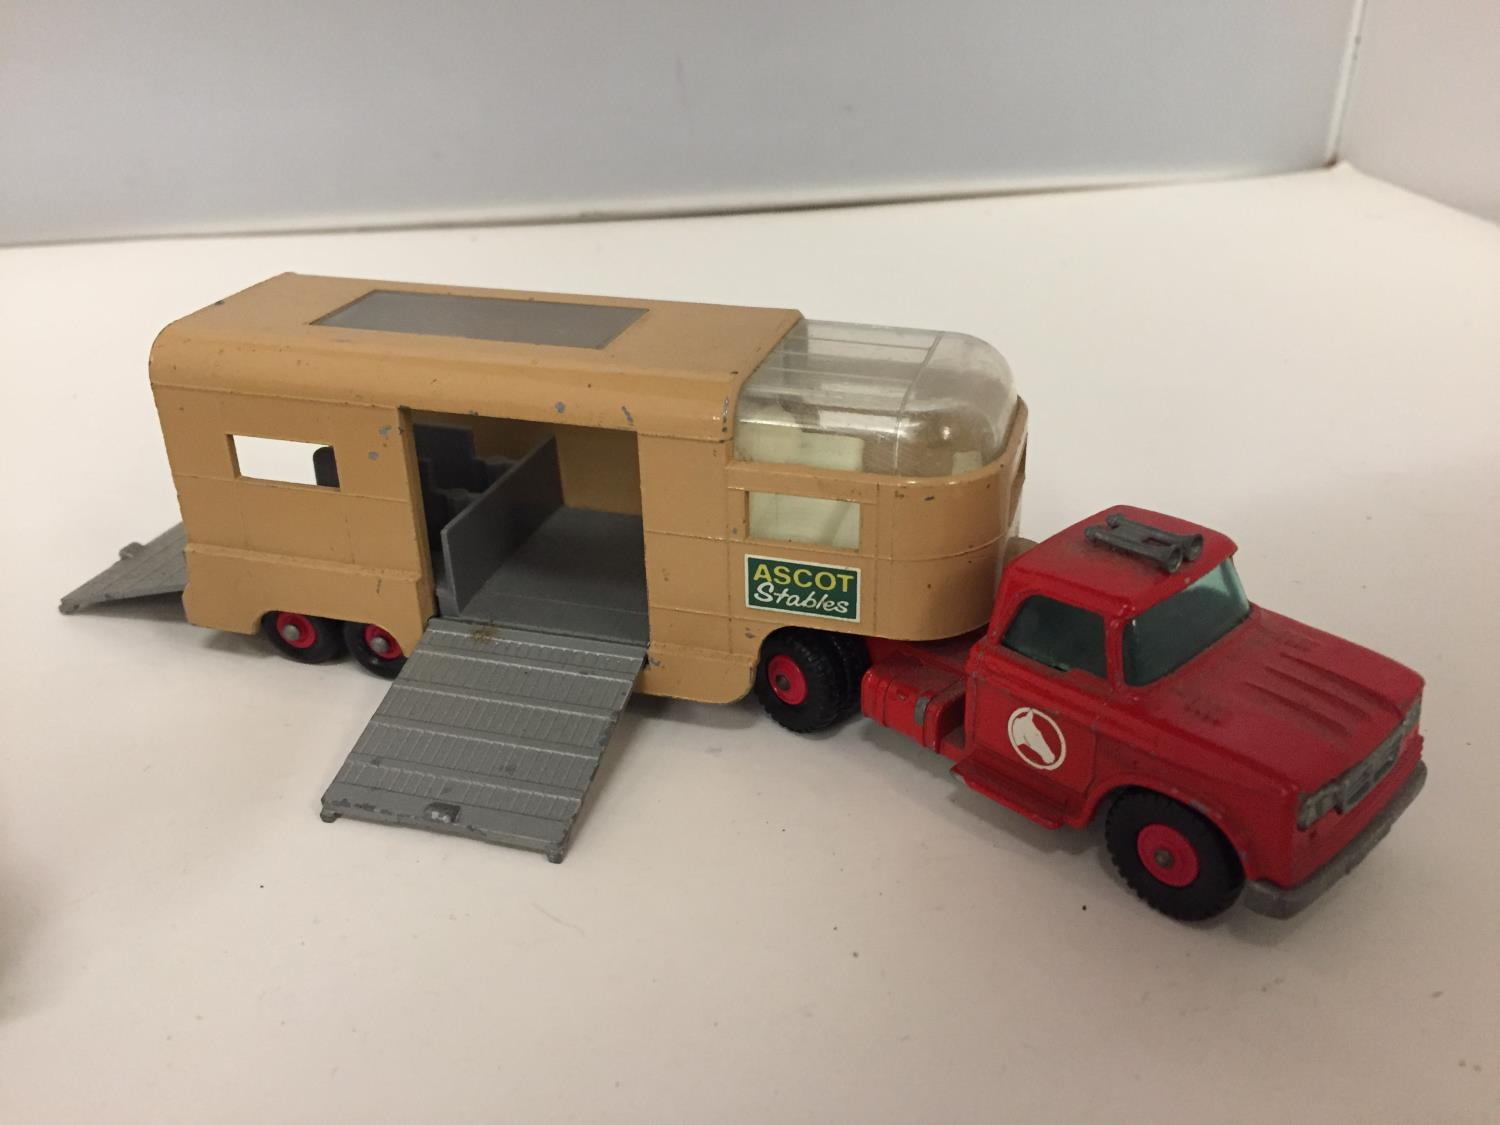 A DINKY MODEL MUIR-HILL DUMPER NO.562 1949-1954 AND A MATCH BOX KINGSIZE ARTICULATED HORSE VAN - Image 3 of 5